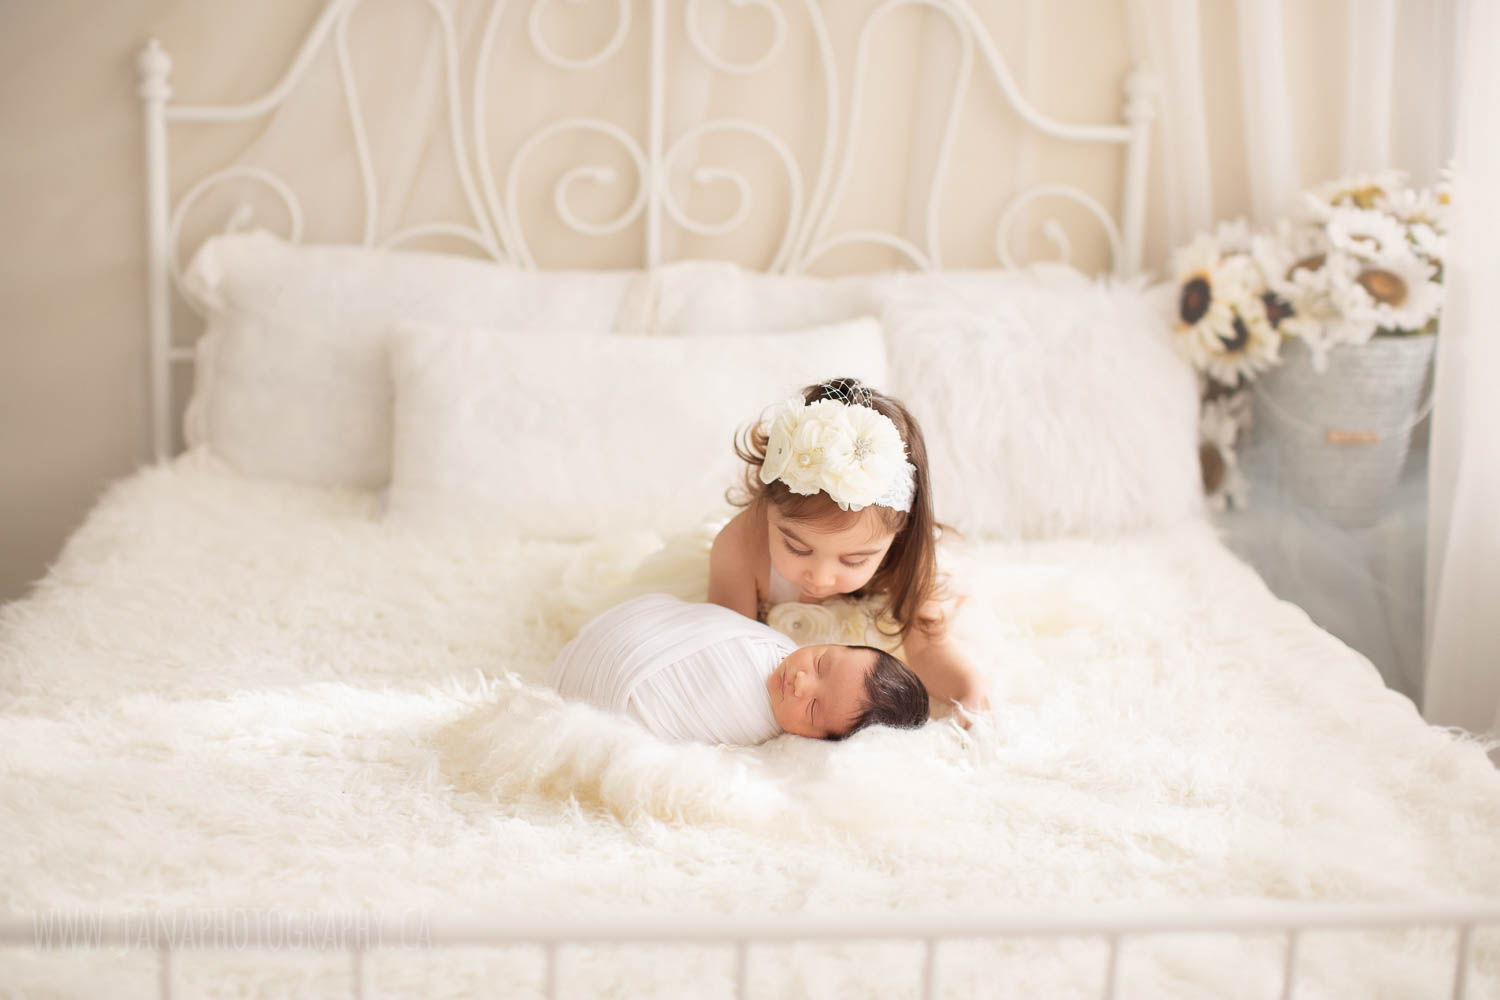 Tips for photographing your own newborn at home with natural light (DIY)